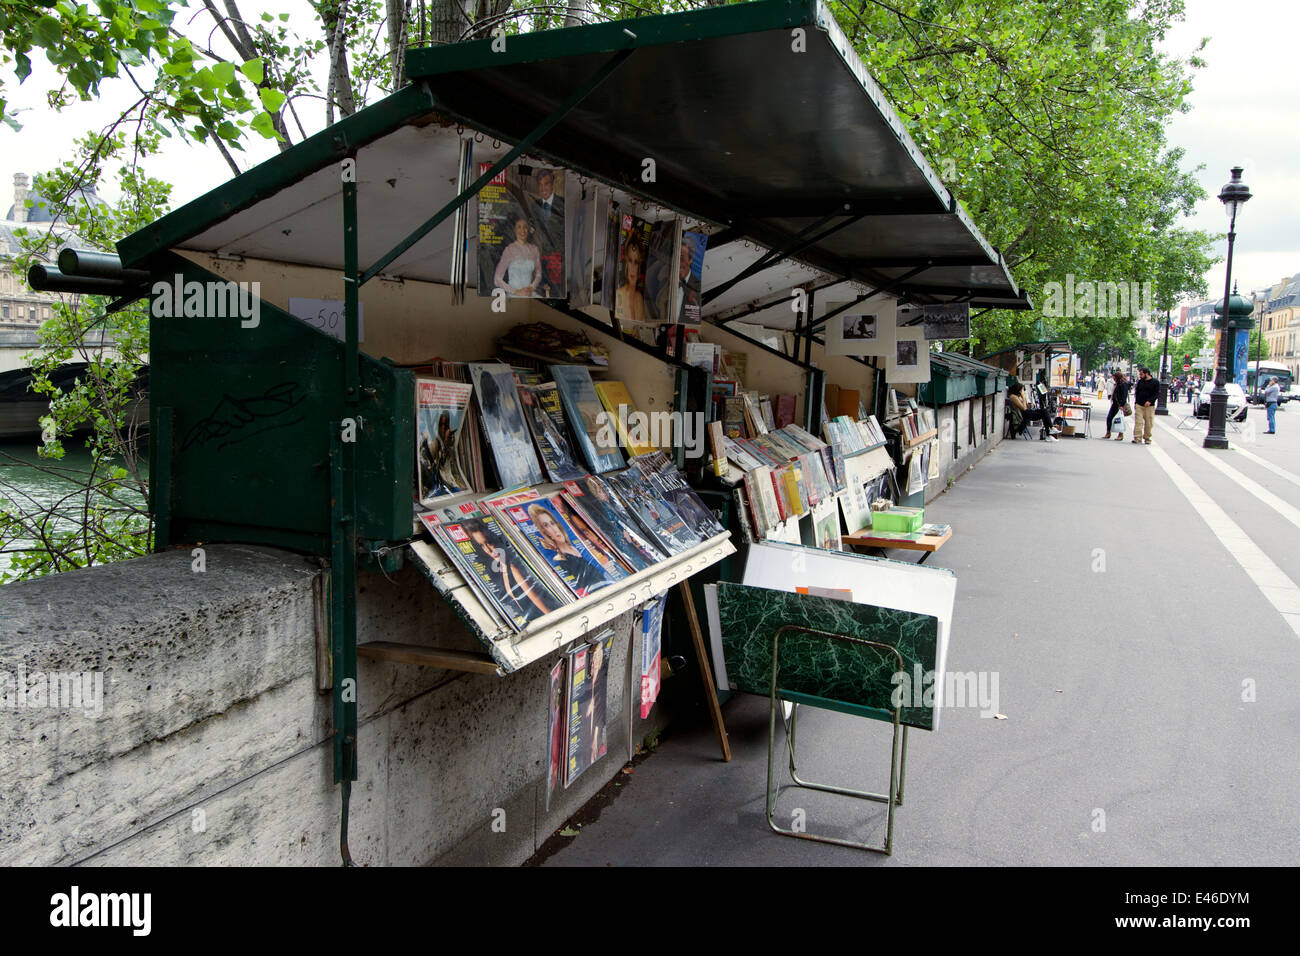 Stalls on the Left Bank of the Seine, Paris, France - Stock Image